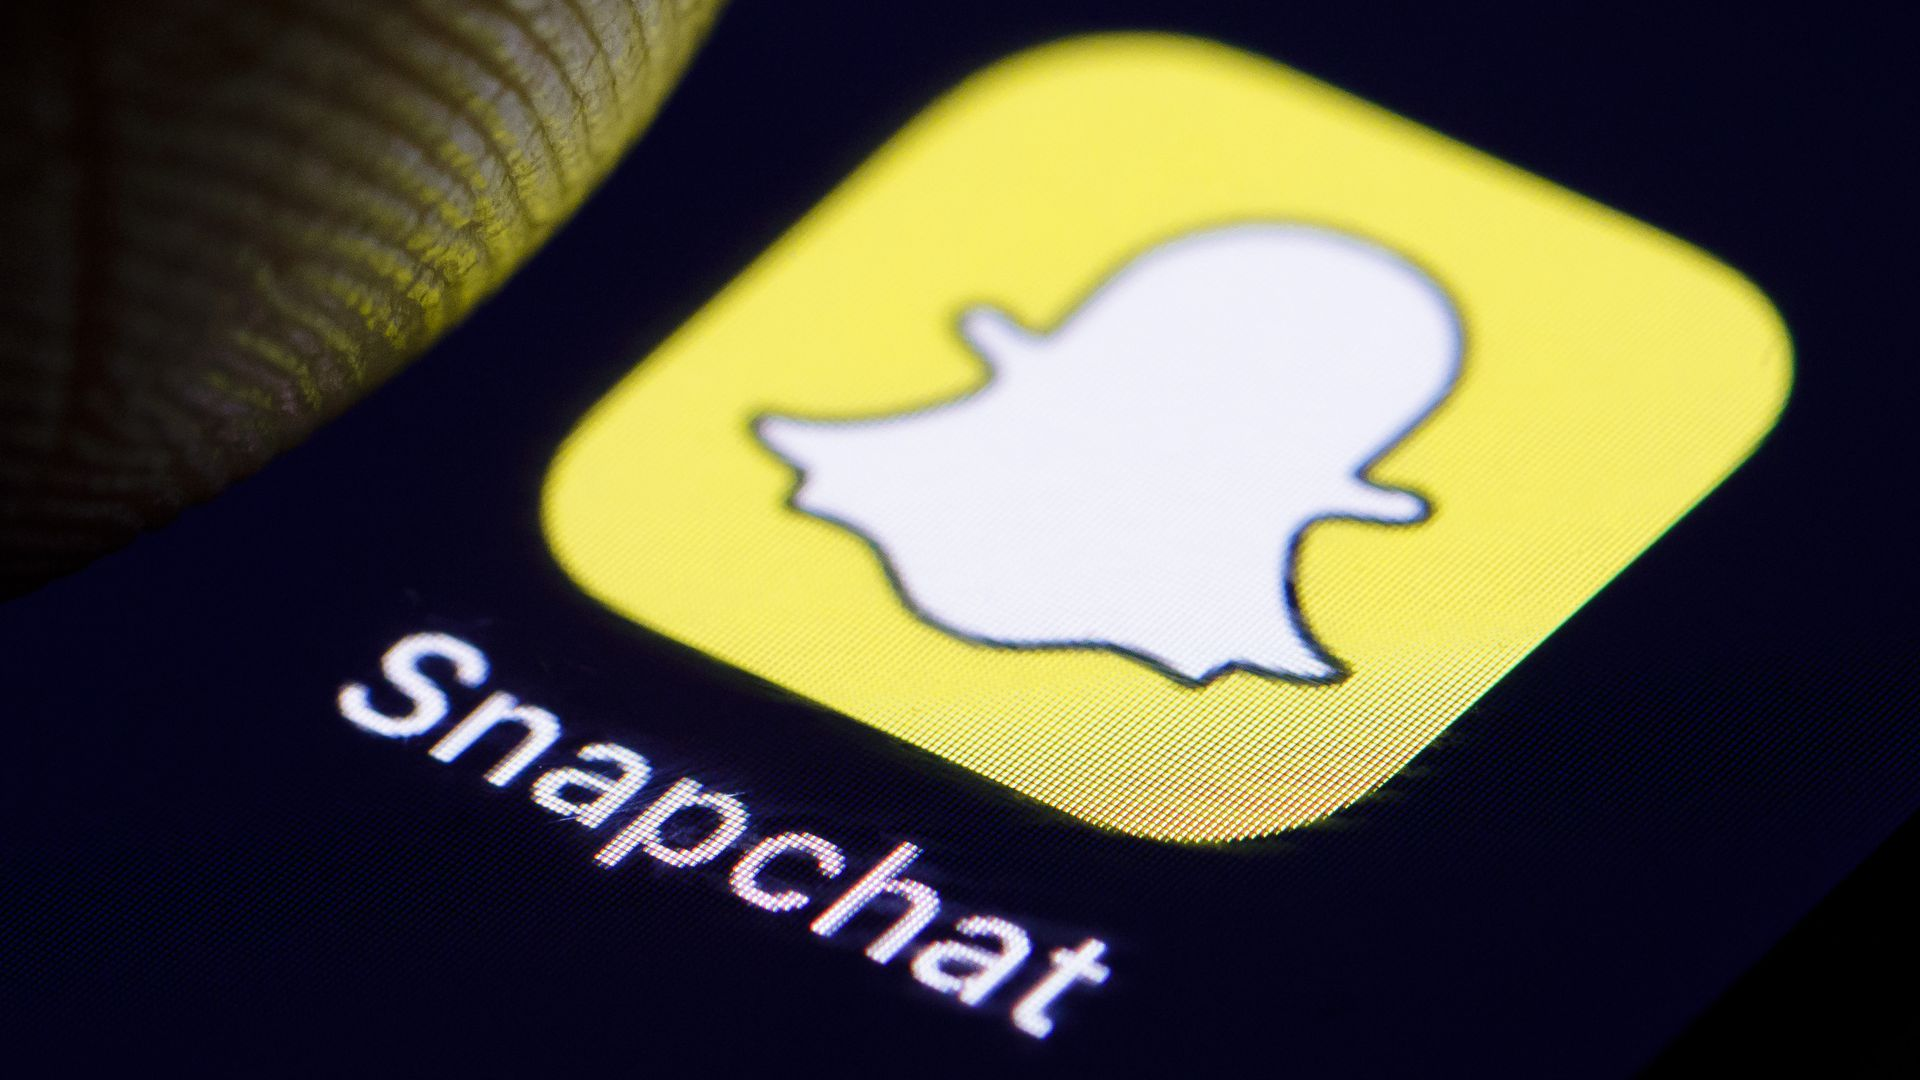 Close-up photo of Snapchat's mobile app icon on a smartphone.